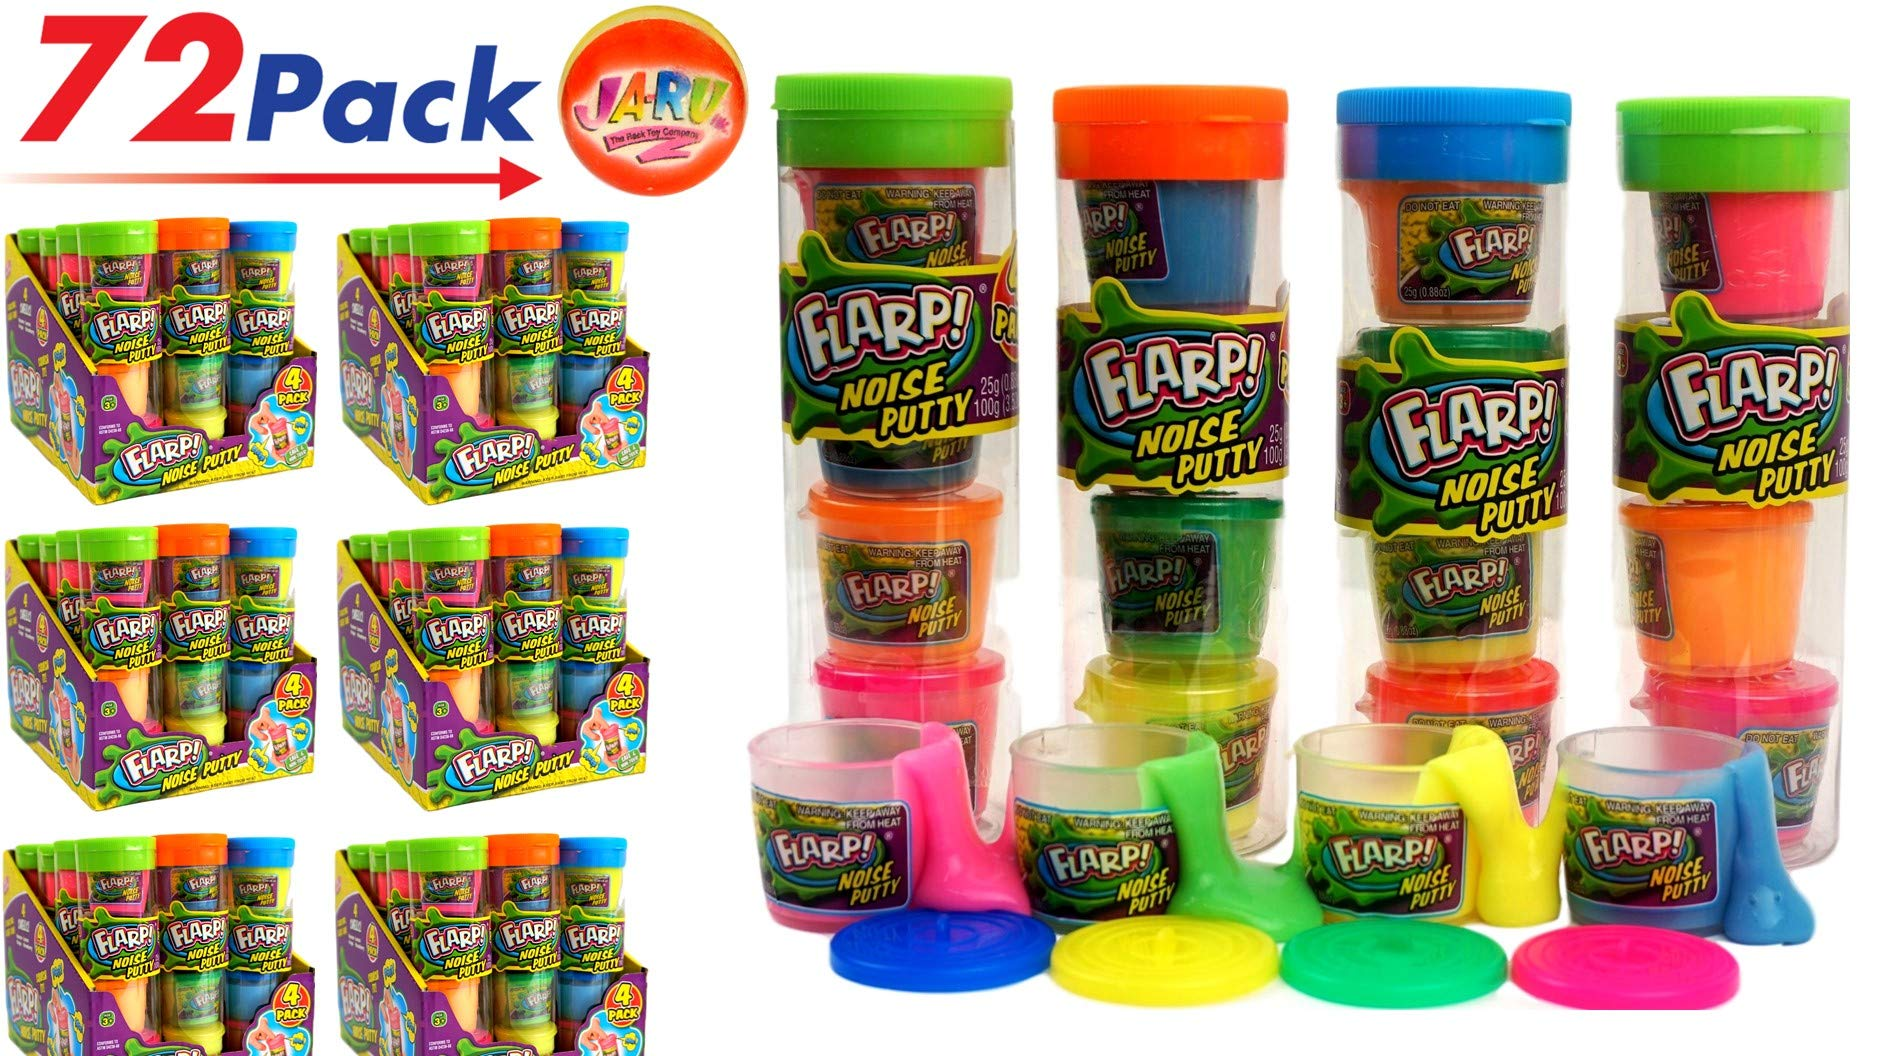 JA-RU Flarp Noise Mini Putty (72Packs of 4) 4 Mini Putty per Pack | Item #336-72